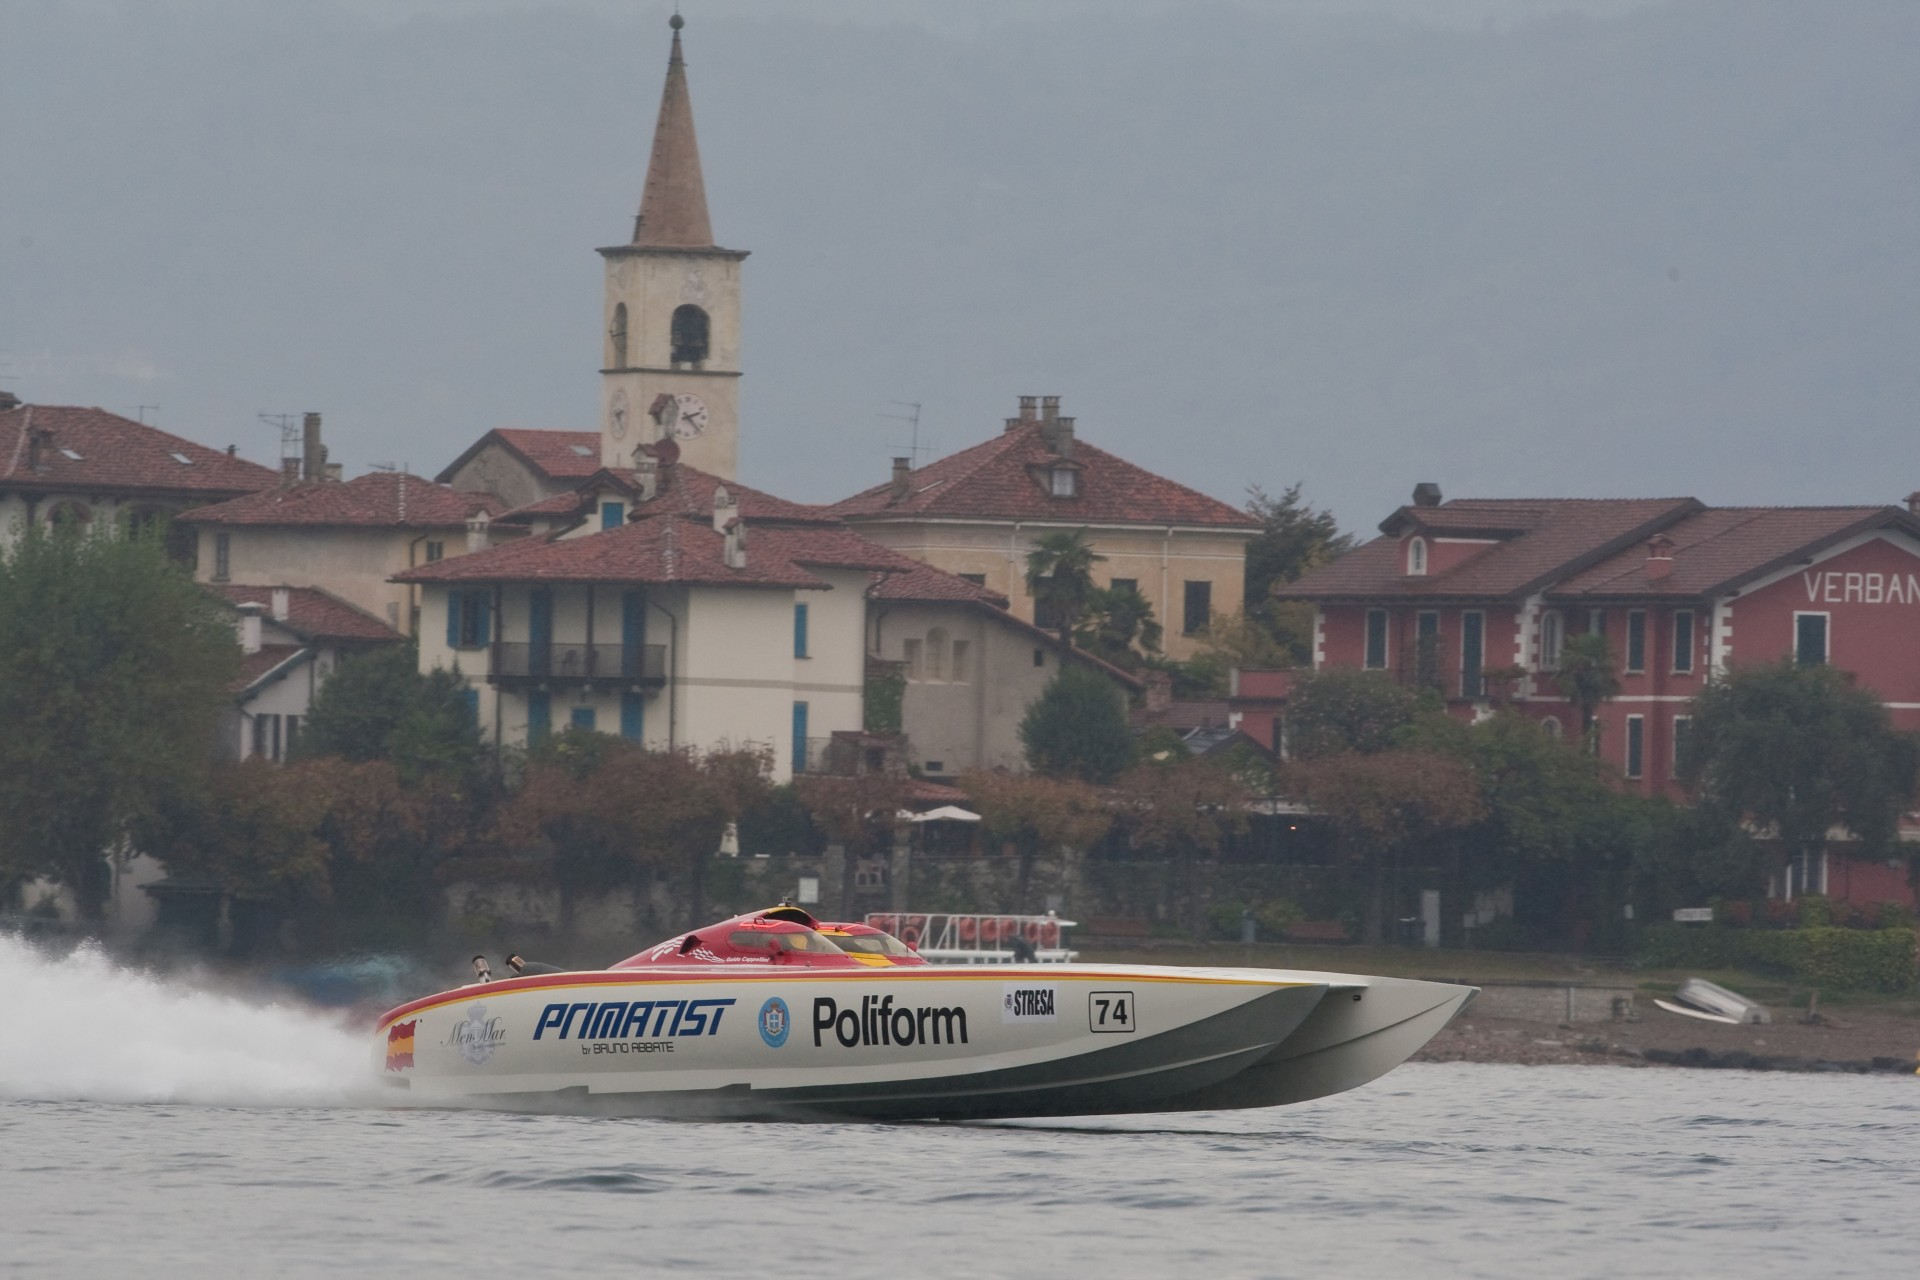 Stresa - 01/10/2010